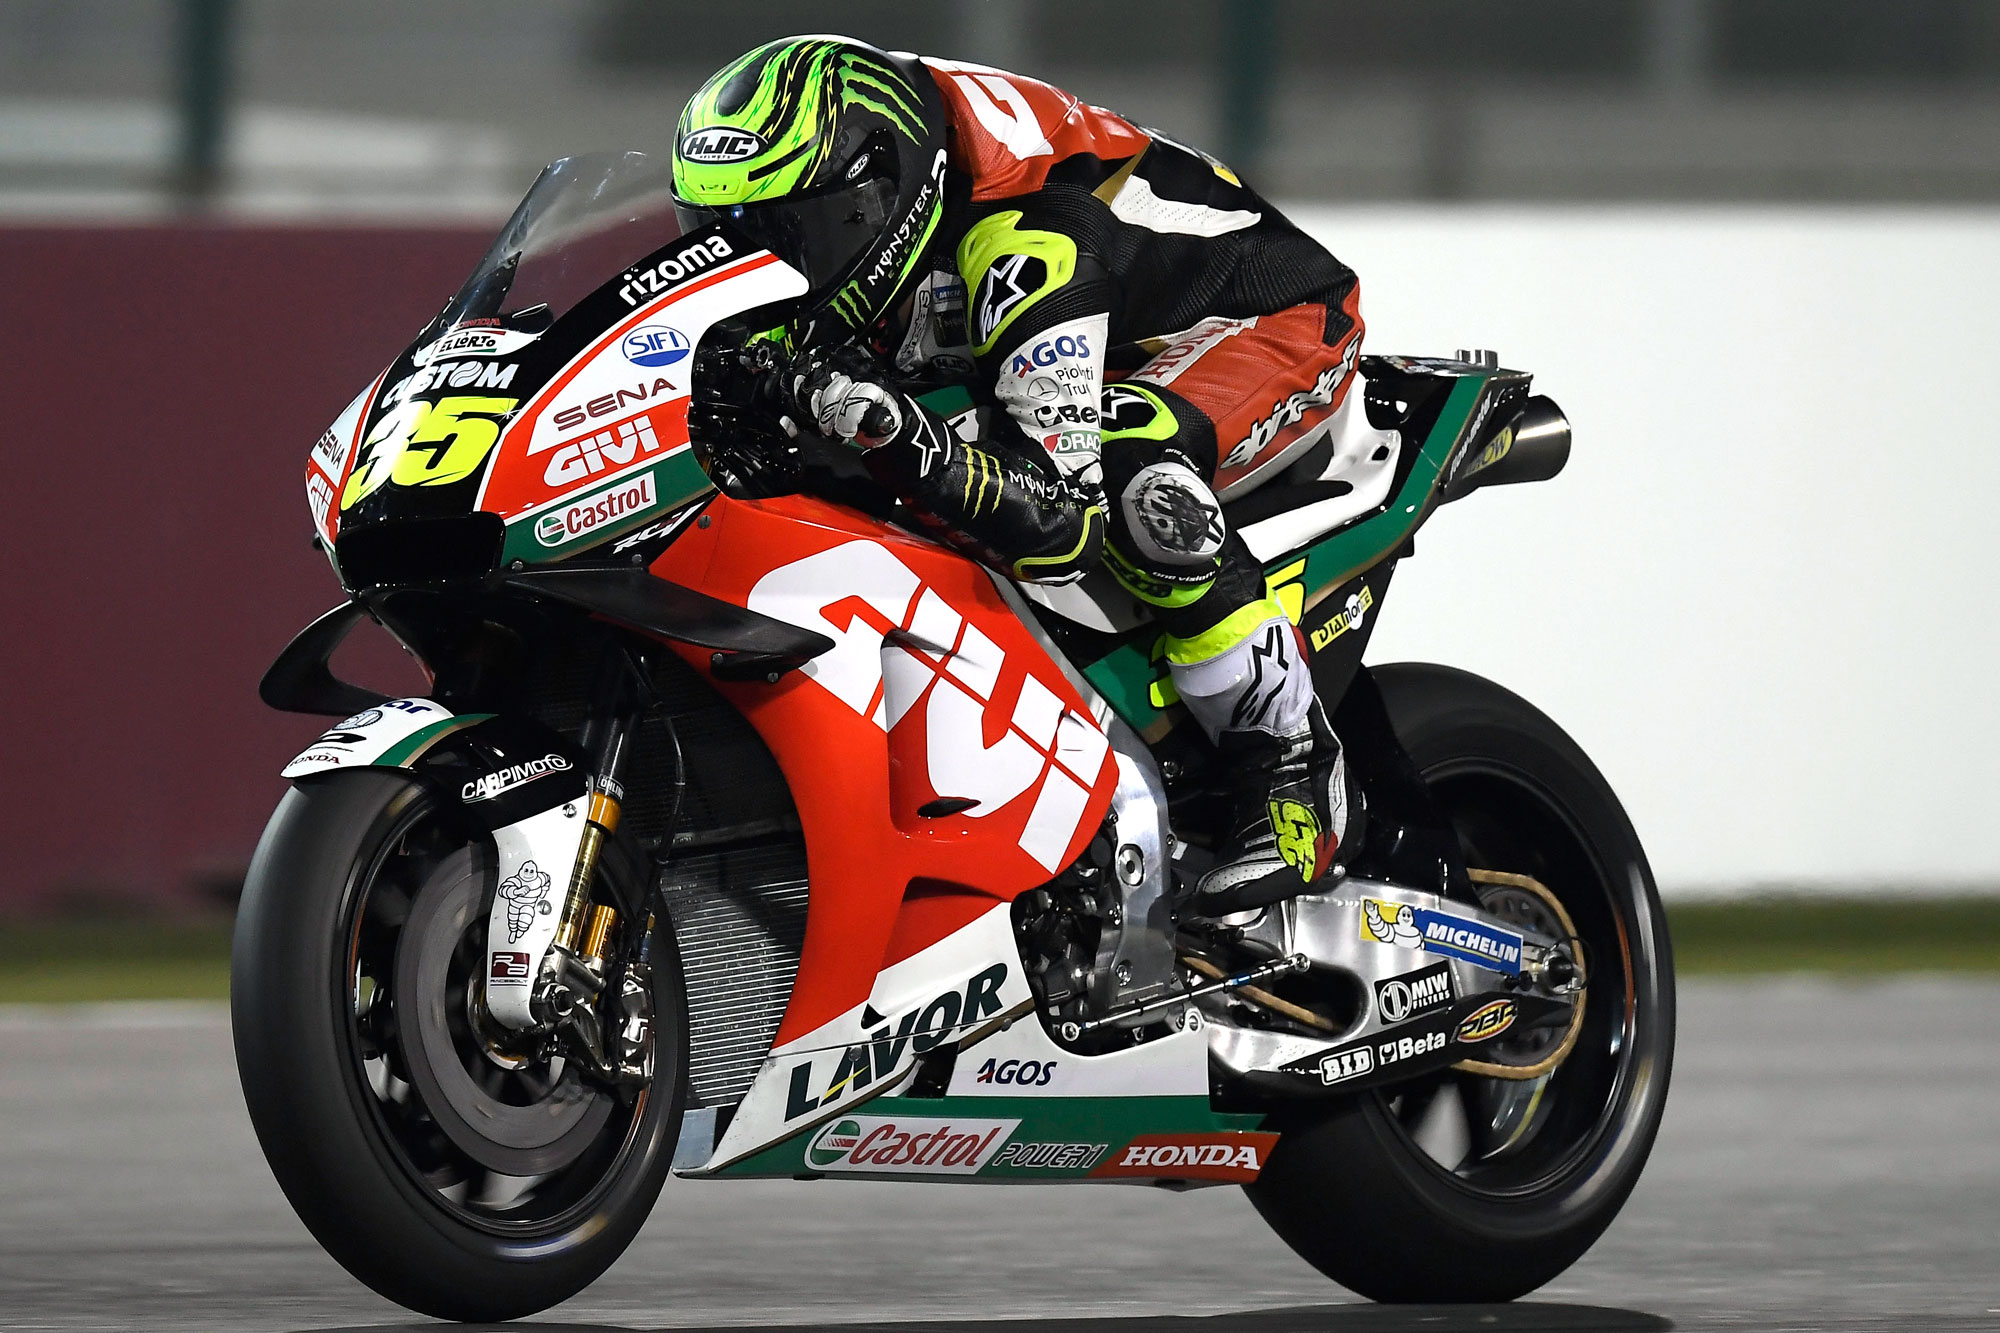 sponsorizzazione motogp LCR Honda RTR sports marketing